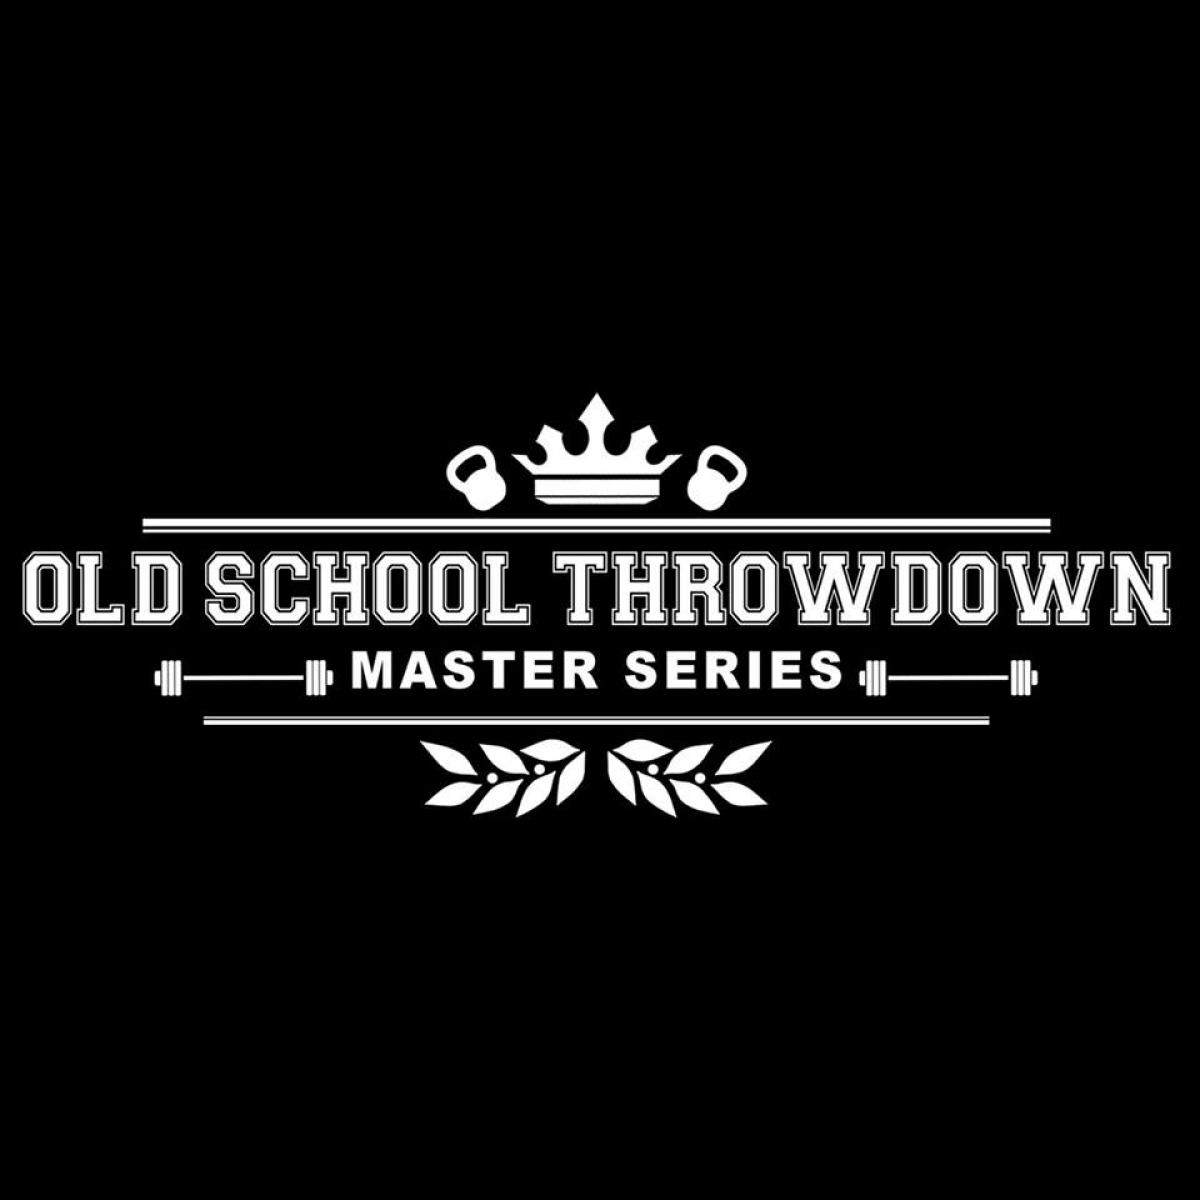 OLD School Throwdown 2018